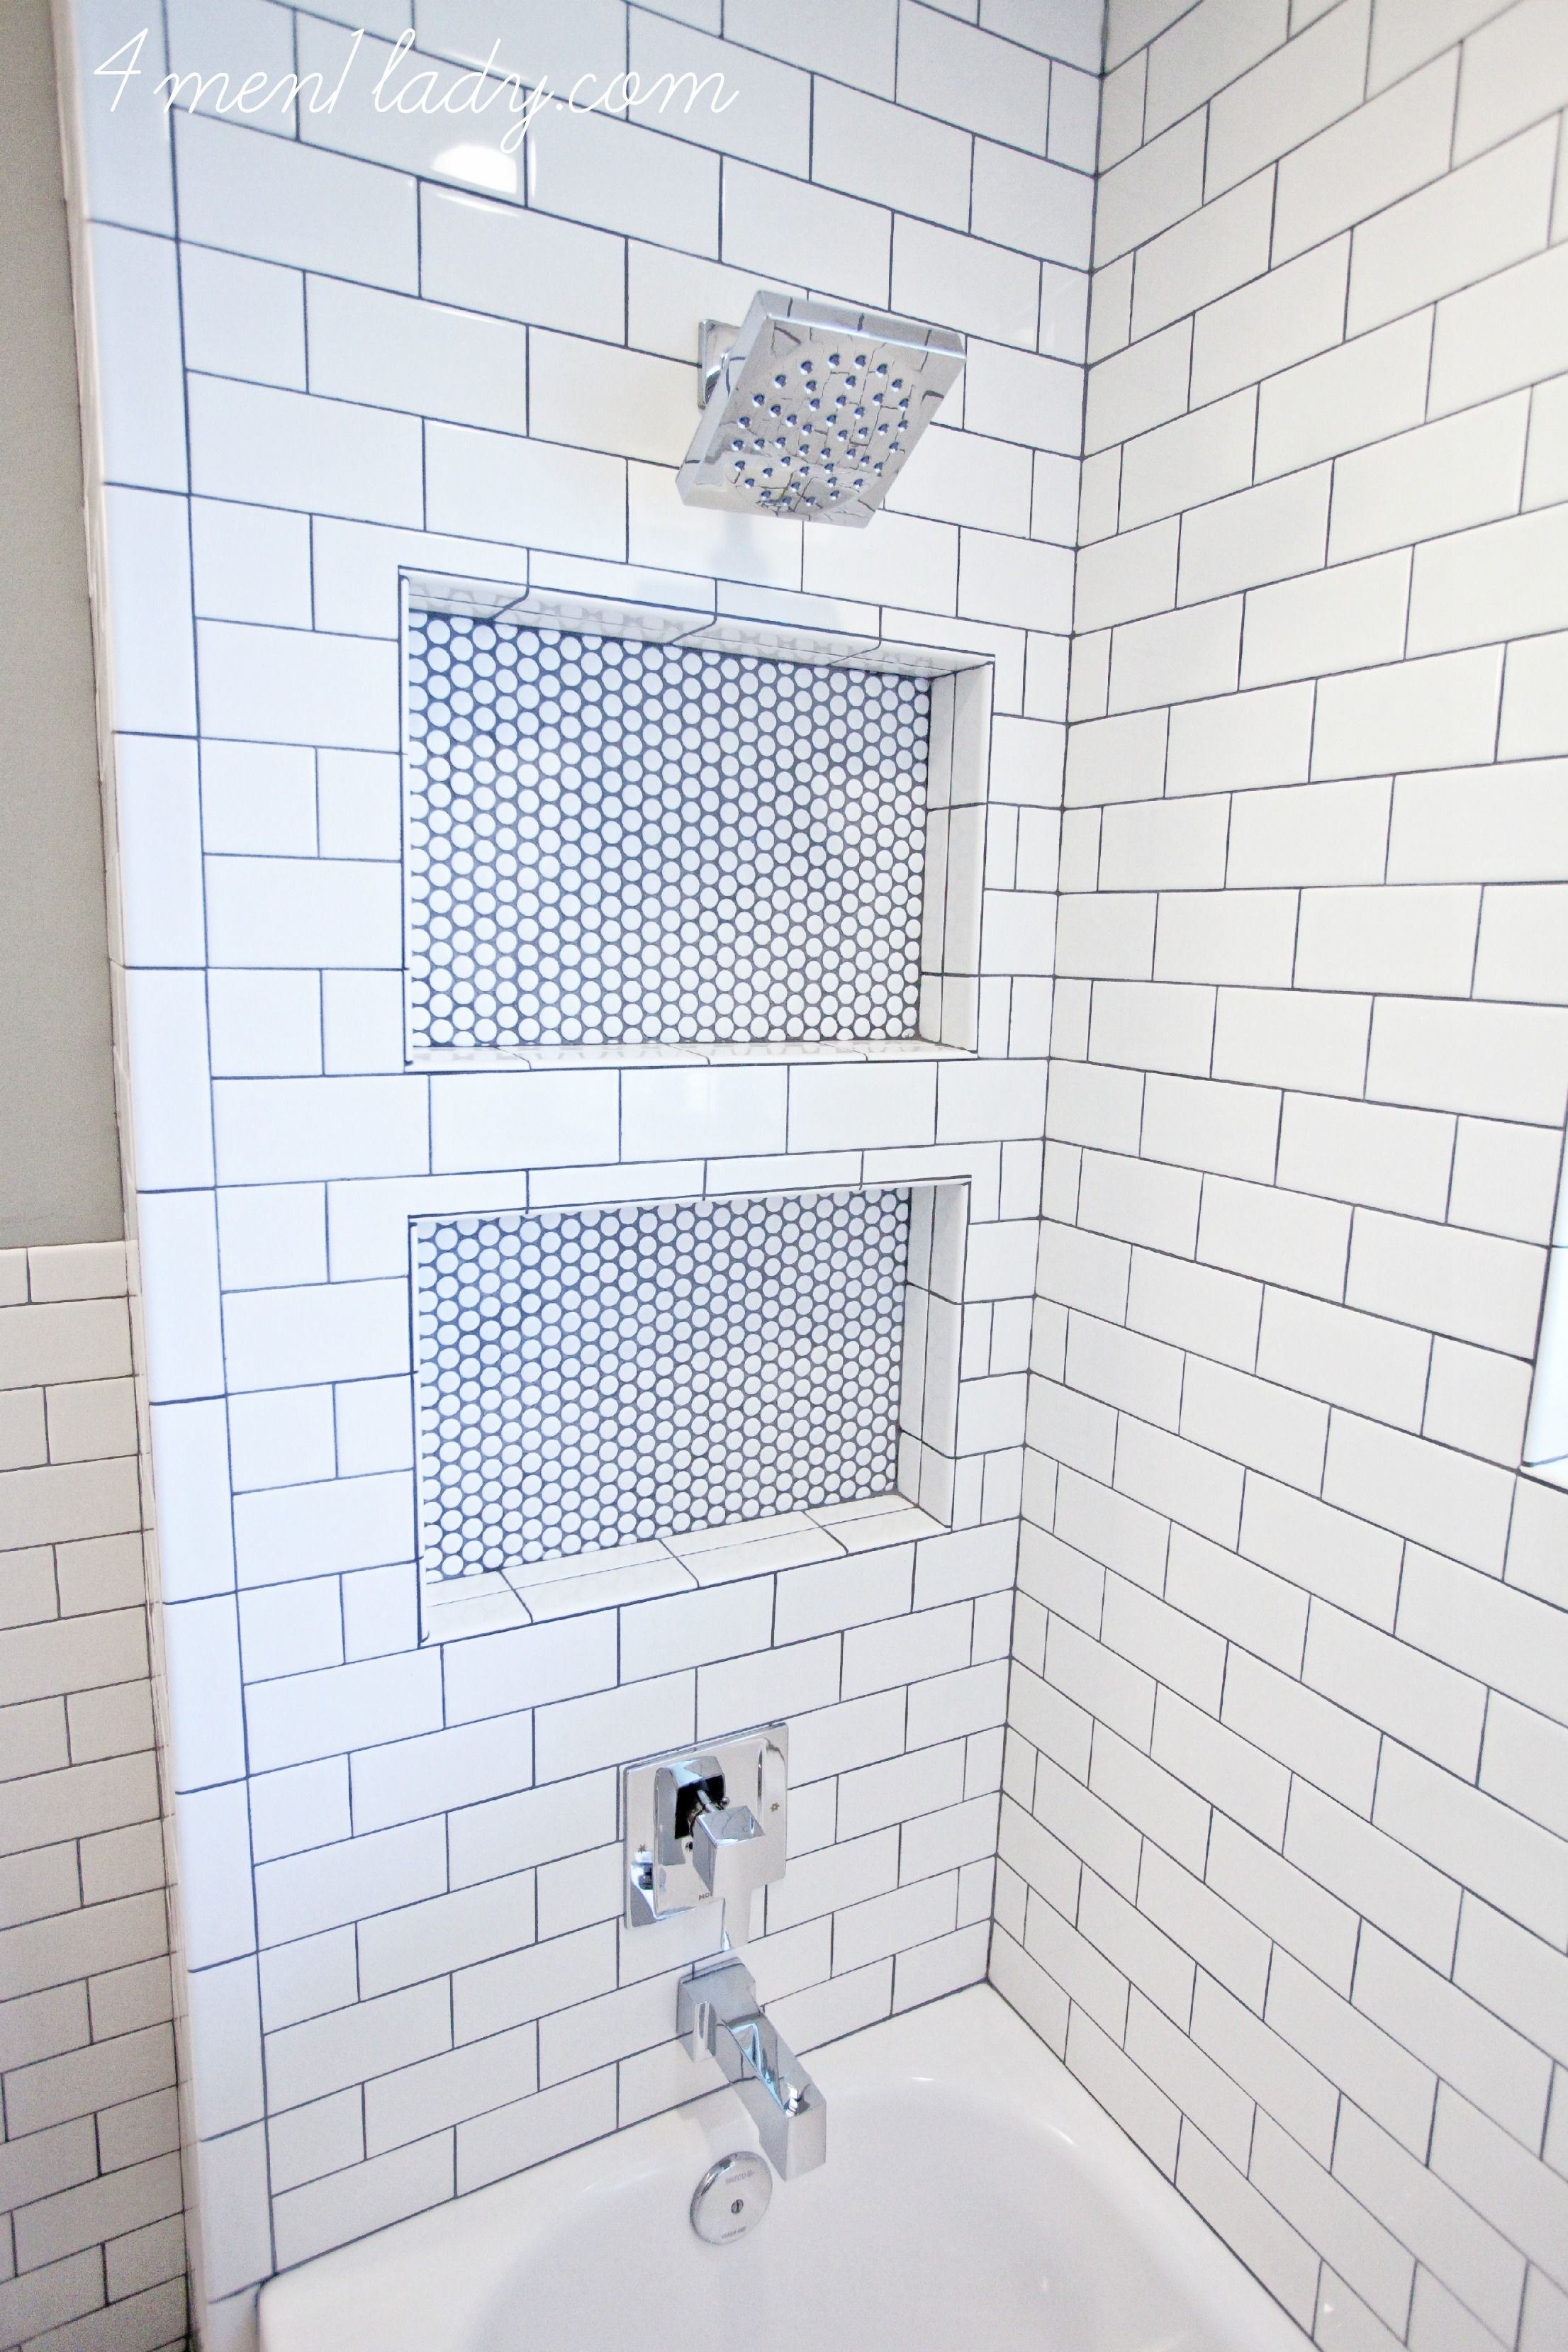 Shower cubies under shower head | $20k Bathroom Reno & Budget (labor ...